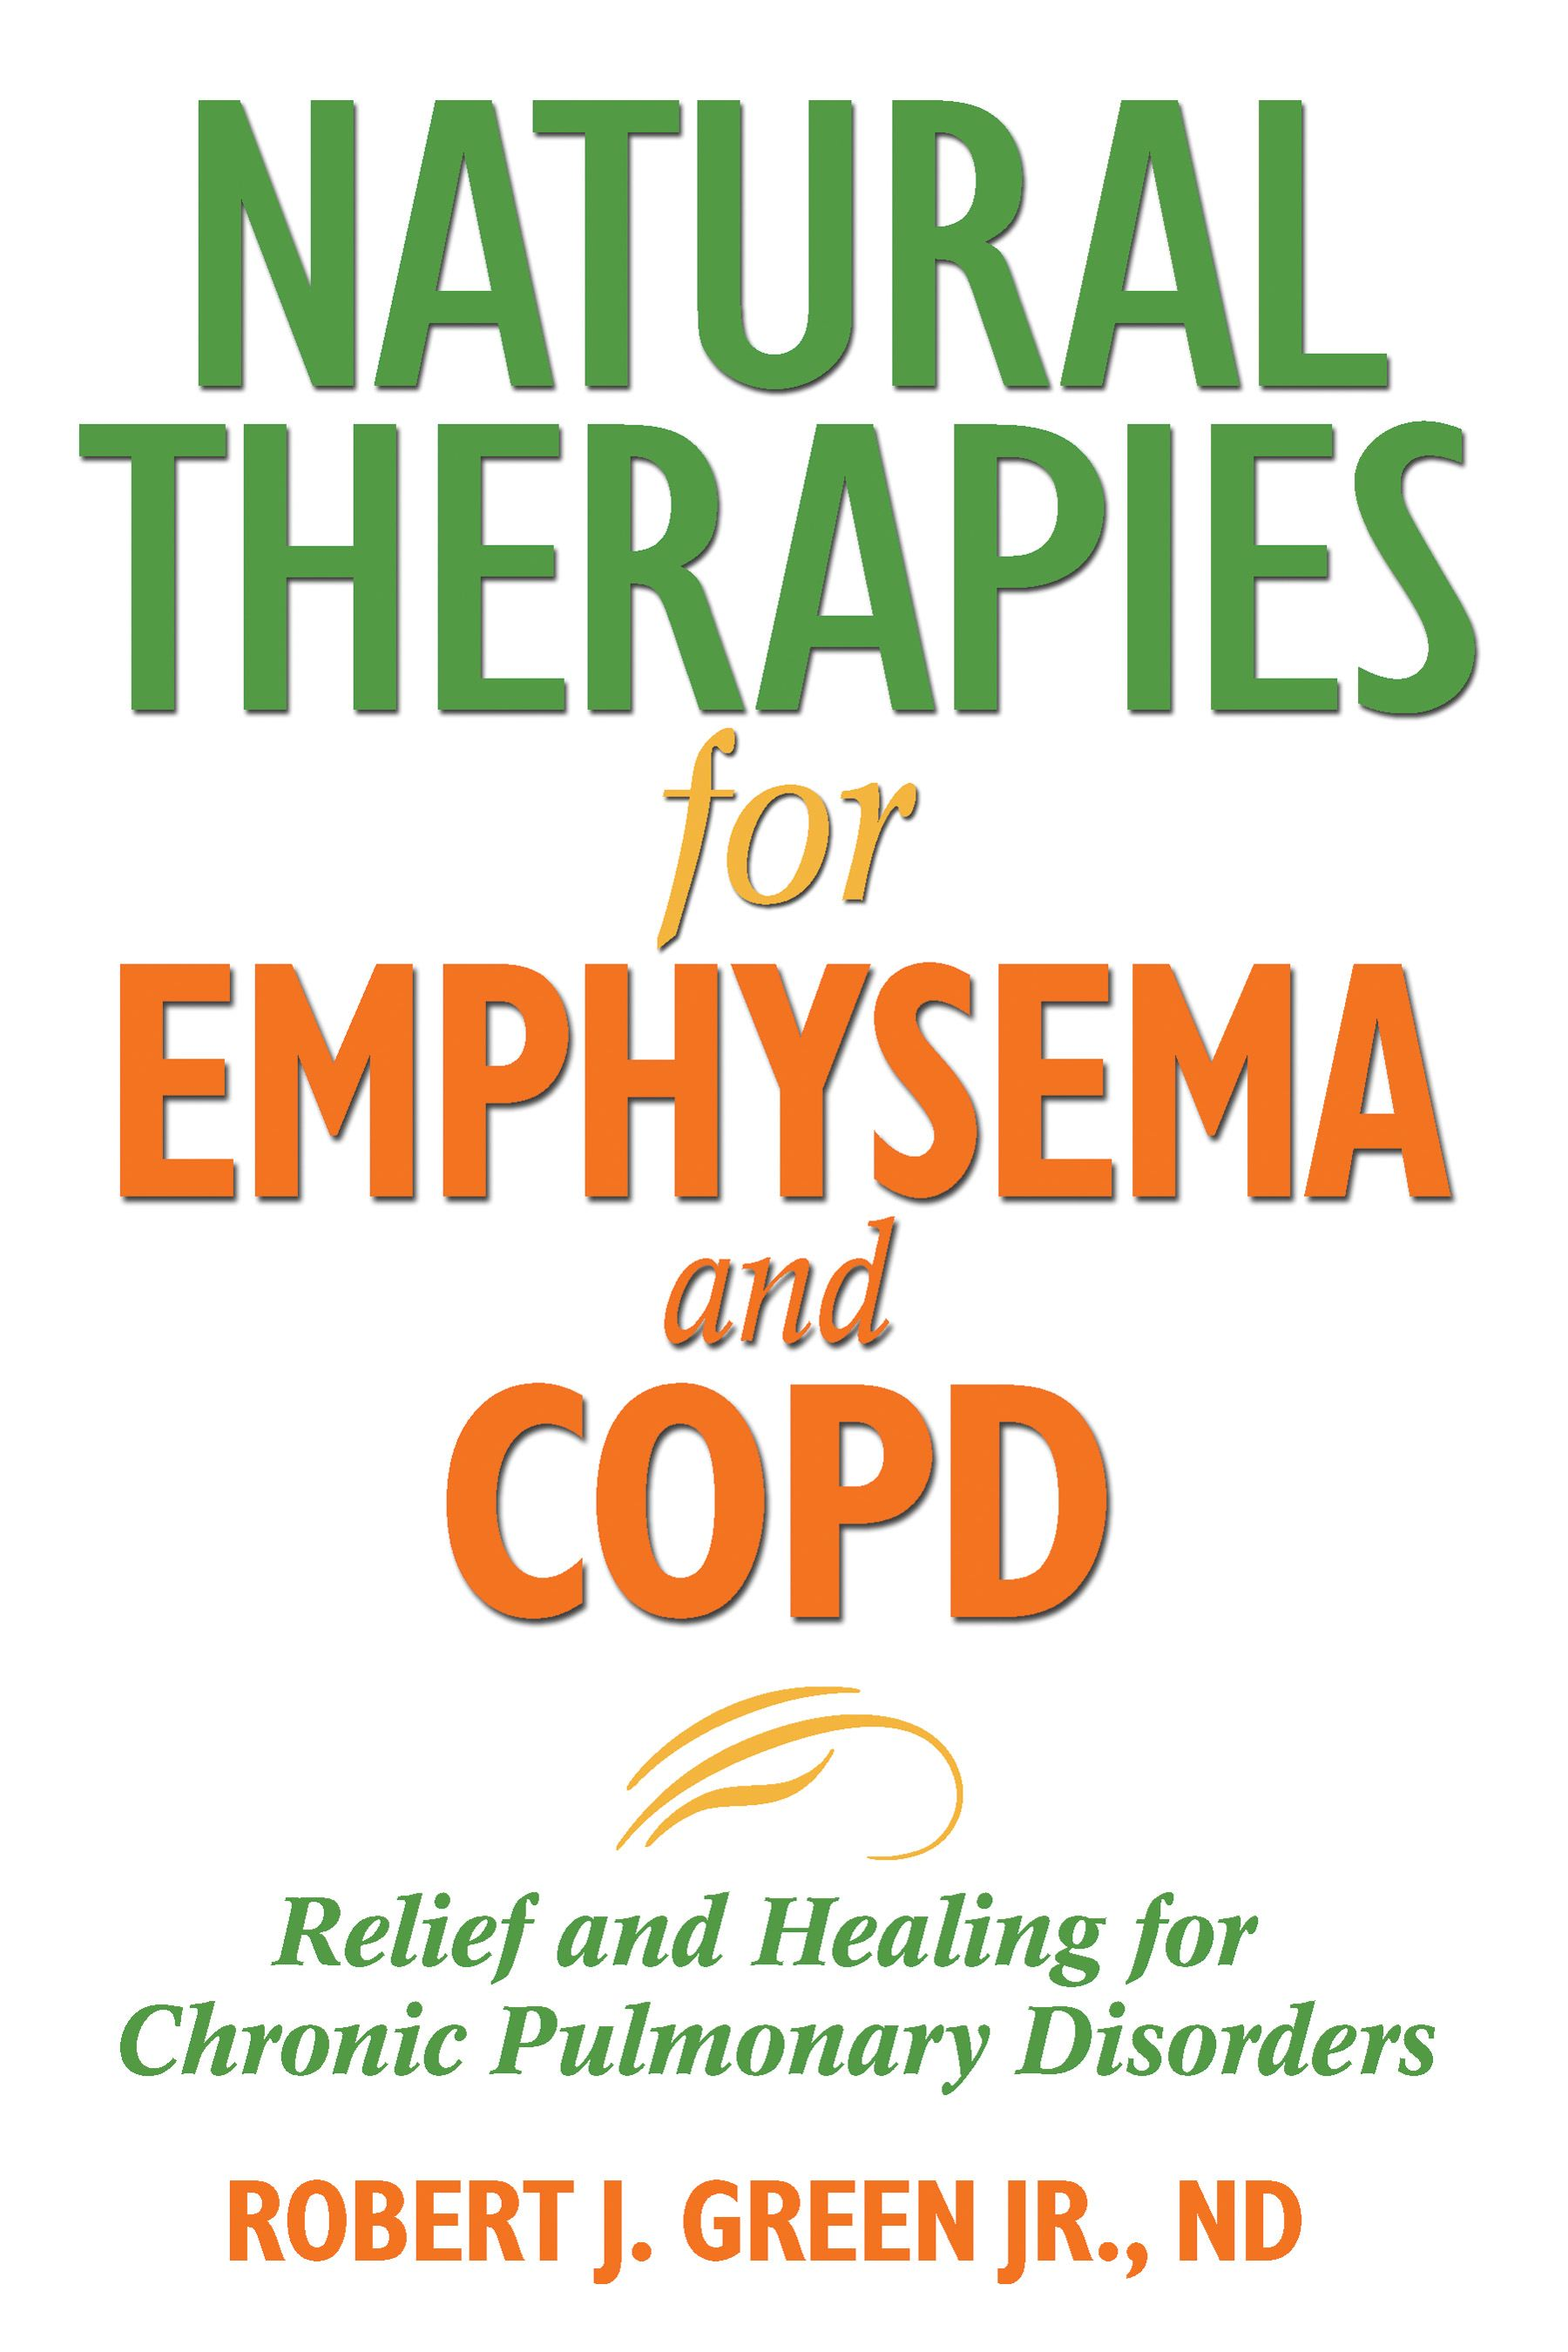 Natural therapies for emphysema and copd 9781594771637 hr